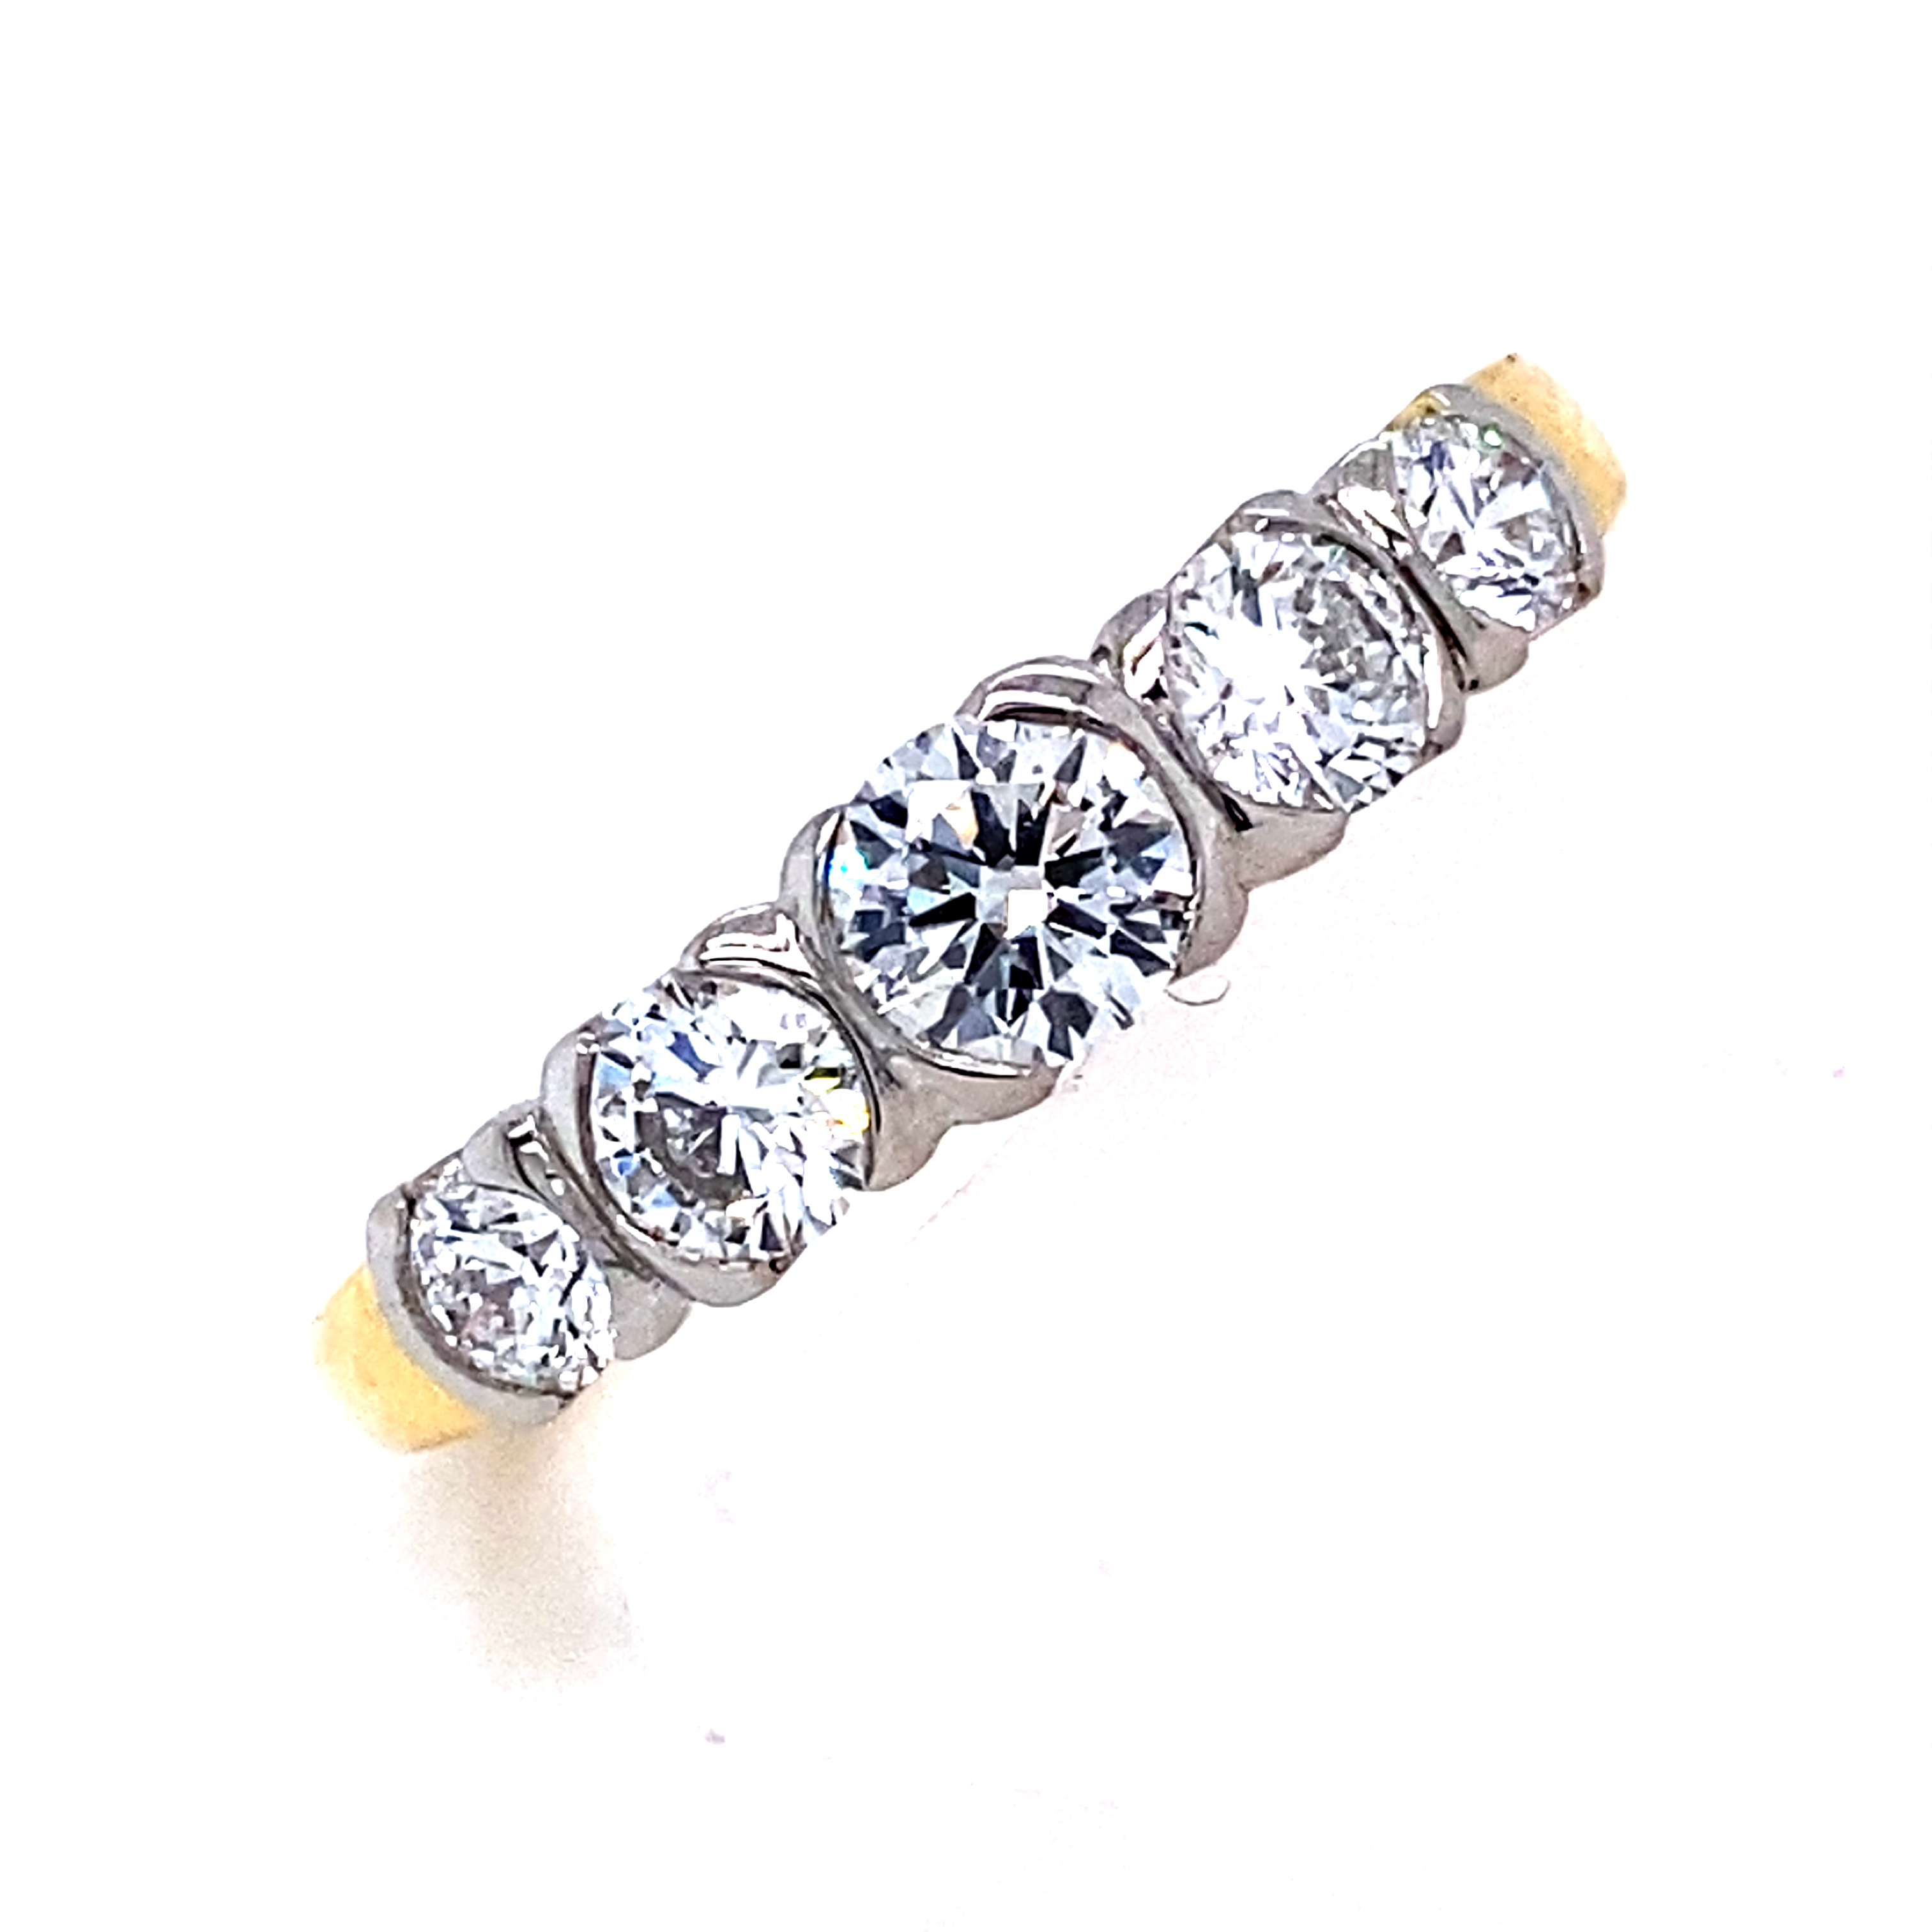 5 Stone Diamond Ring in Yellow and White gold - 0.90 Carats